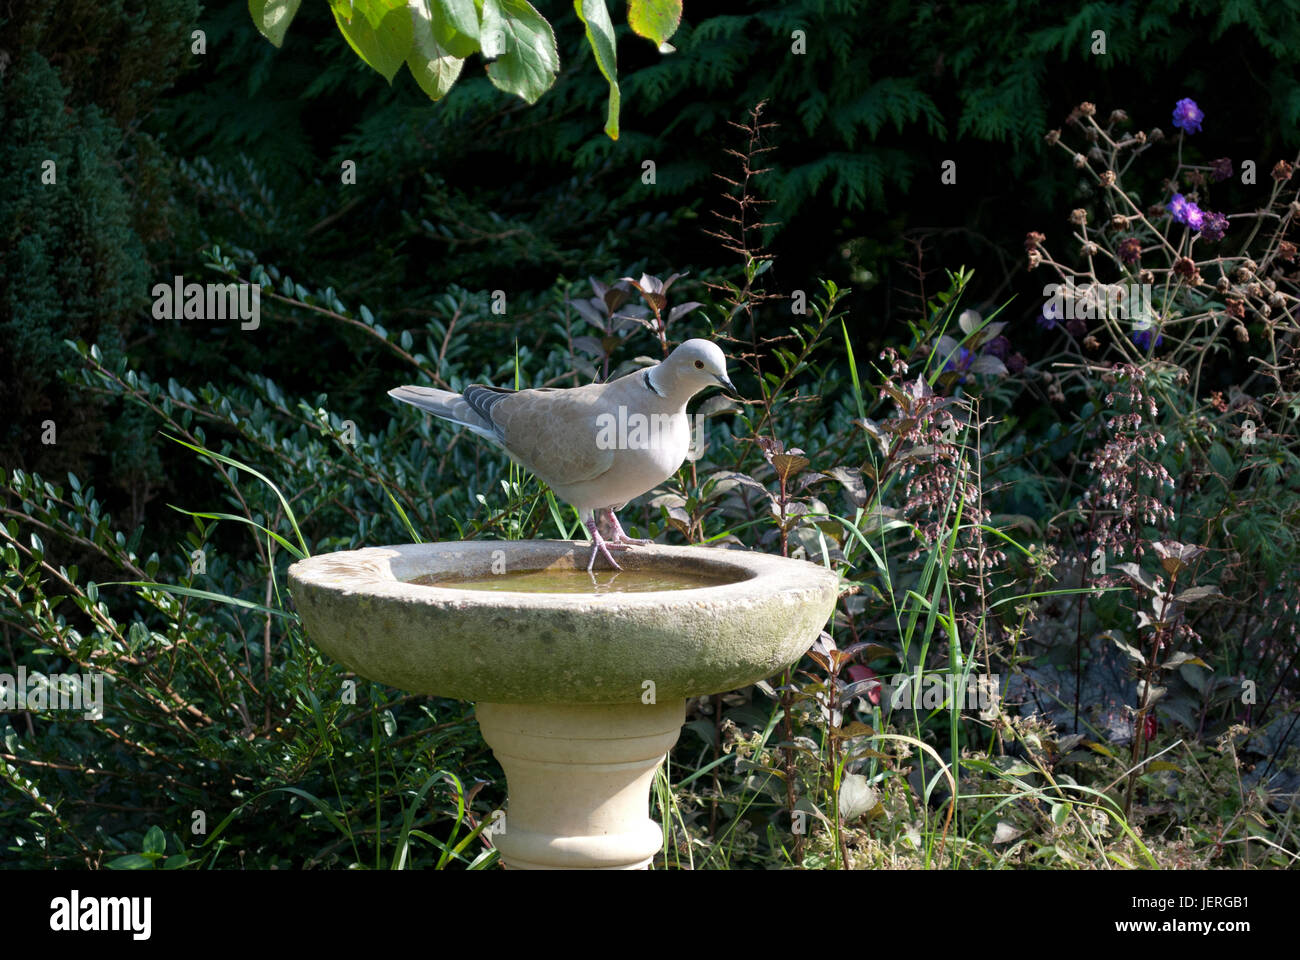 Collared dove drinking from stone bird bath in garden stock photo collared dove drinking from stone bird bath in garden workwithnaturefo